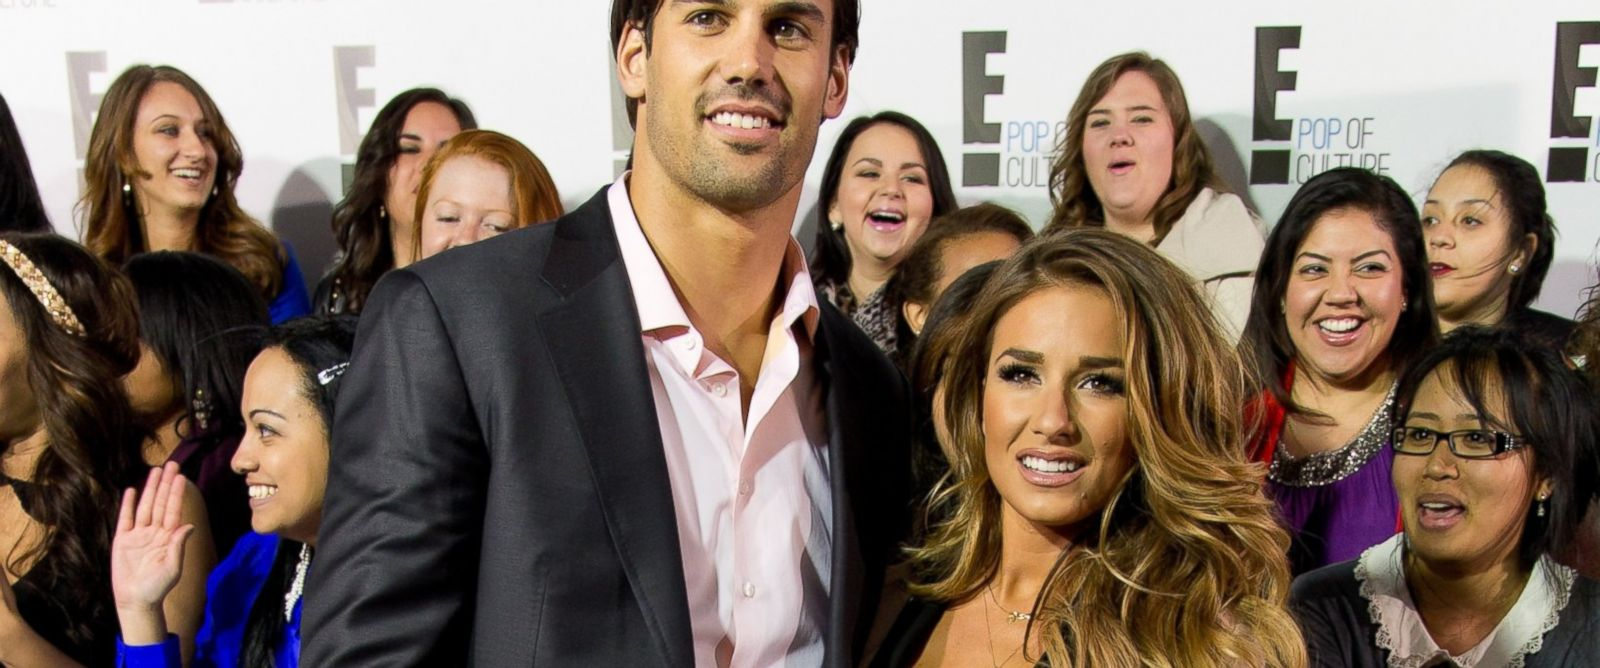 PHOTO: Eric Decker and Jessie James attend the E! 2013 Upfront